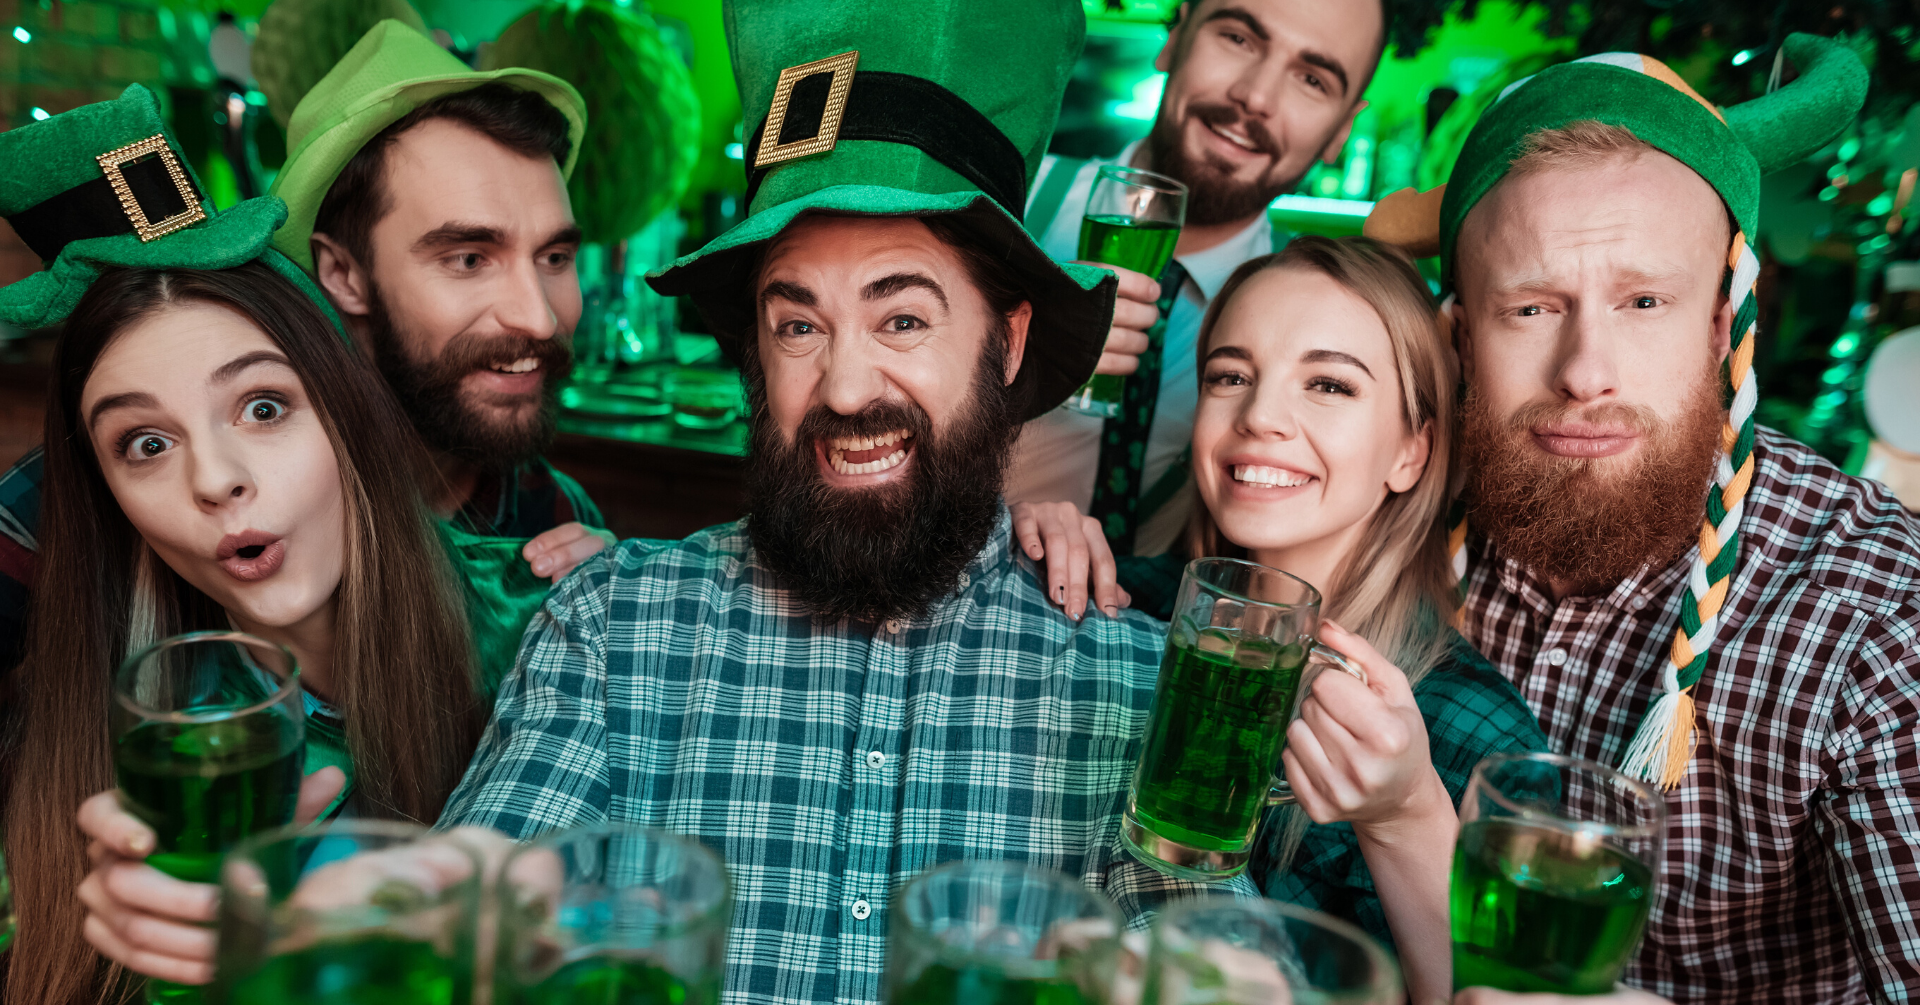 Celebrate St. Patrick's Day/Weekend At Brandon, Florida's Best Irish Bar